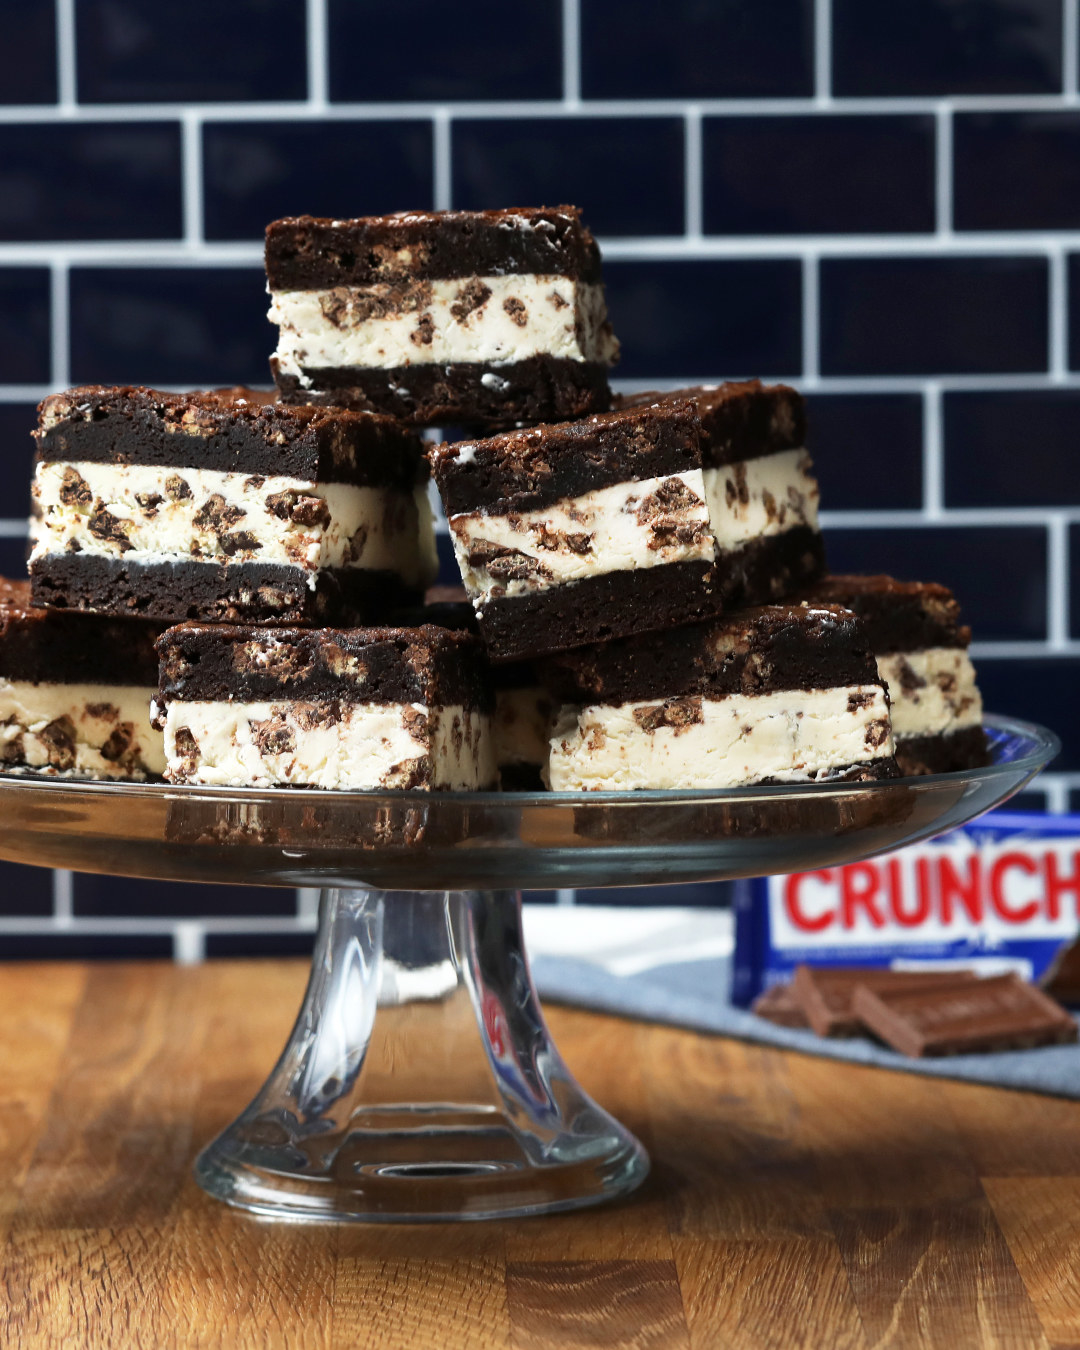 Crunch® Bar Ice Cream Sandwiches